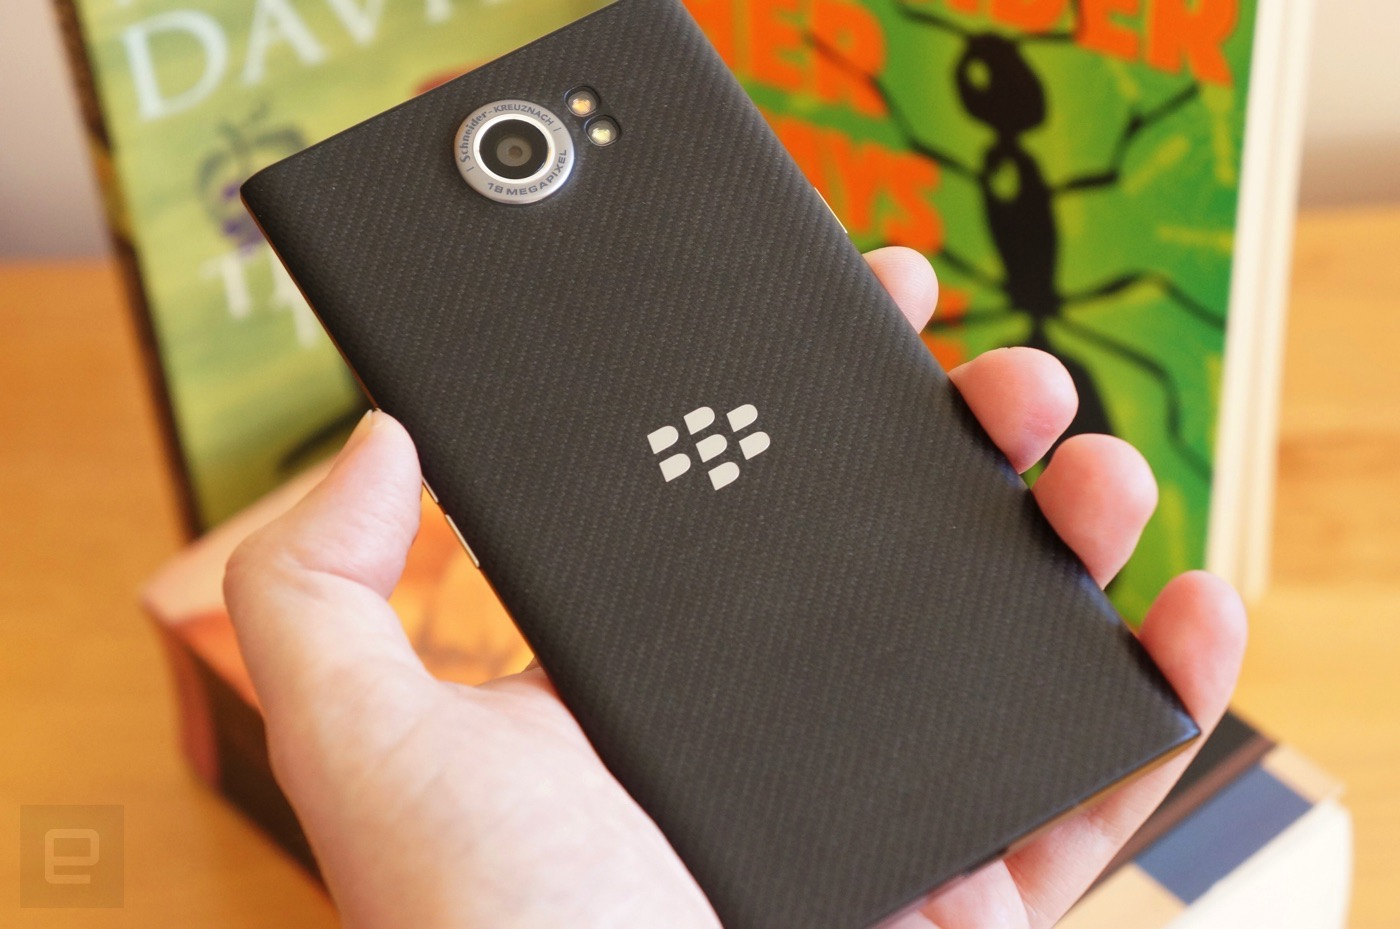 BlackBerry Priv's backside